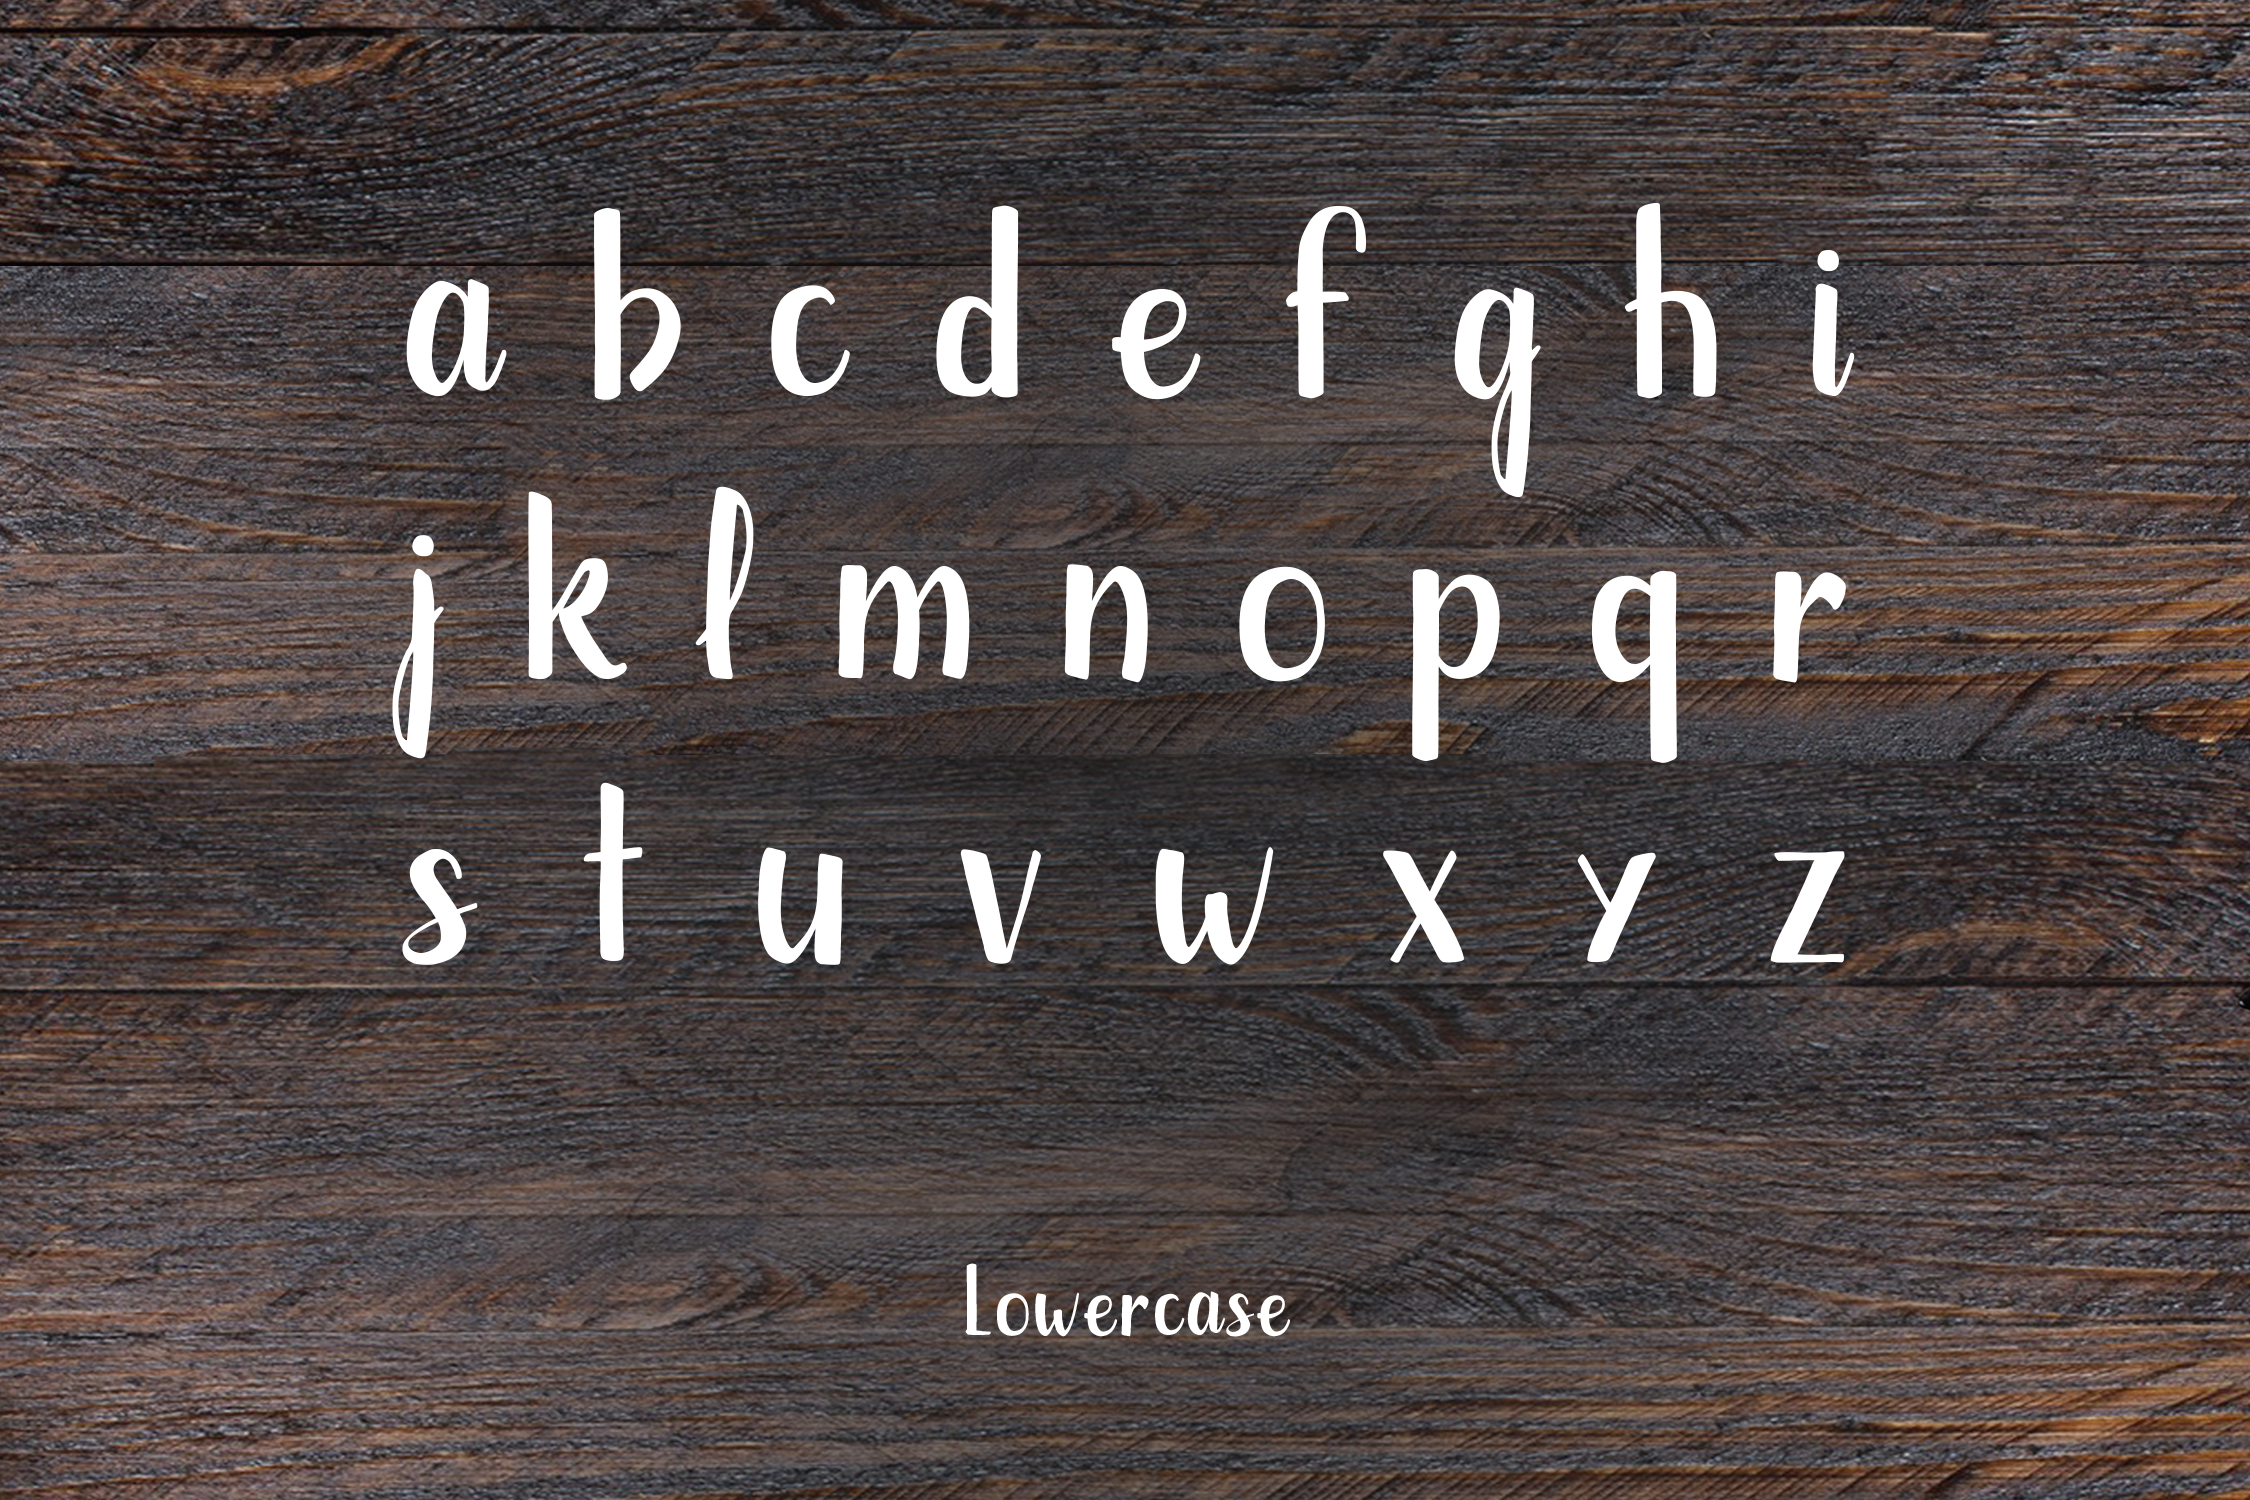 Austra Extended Brush Font example image 3